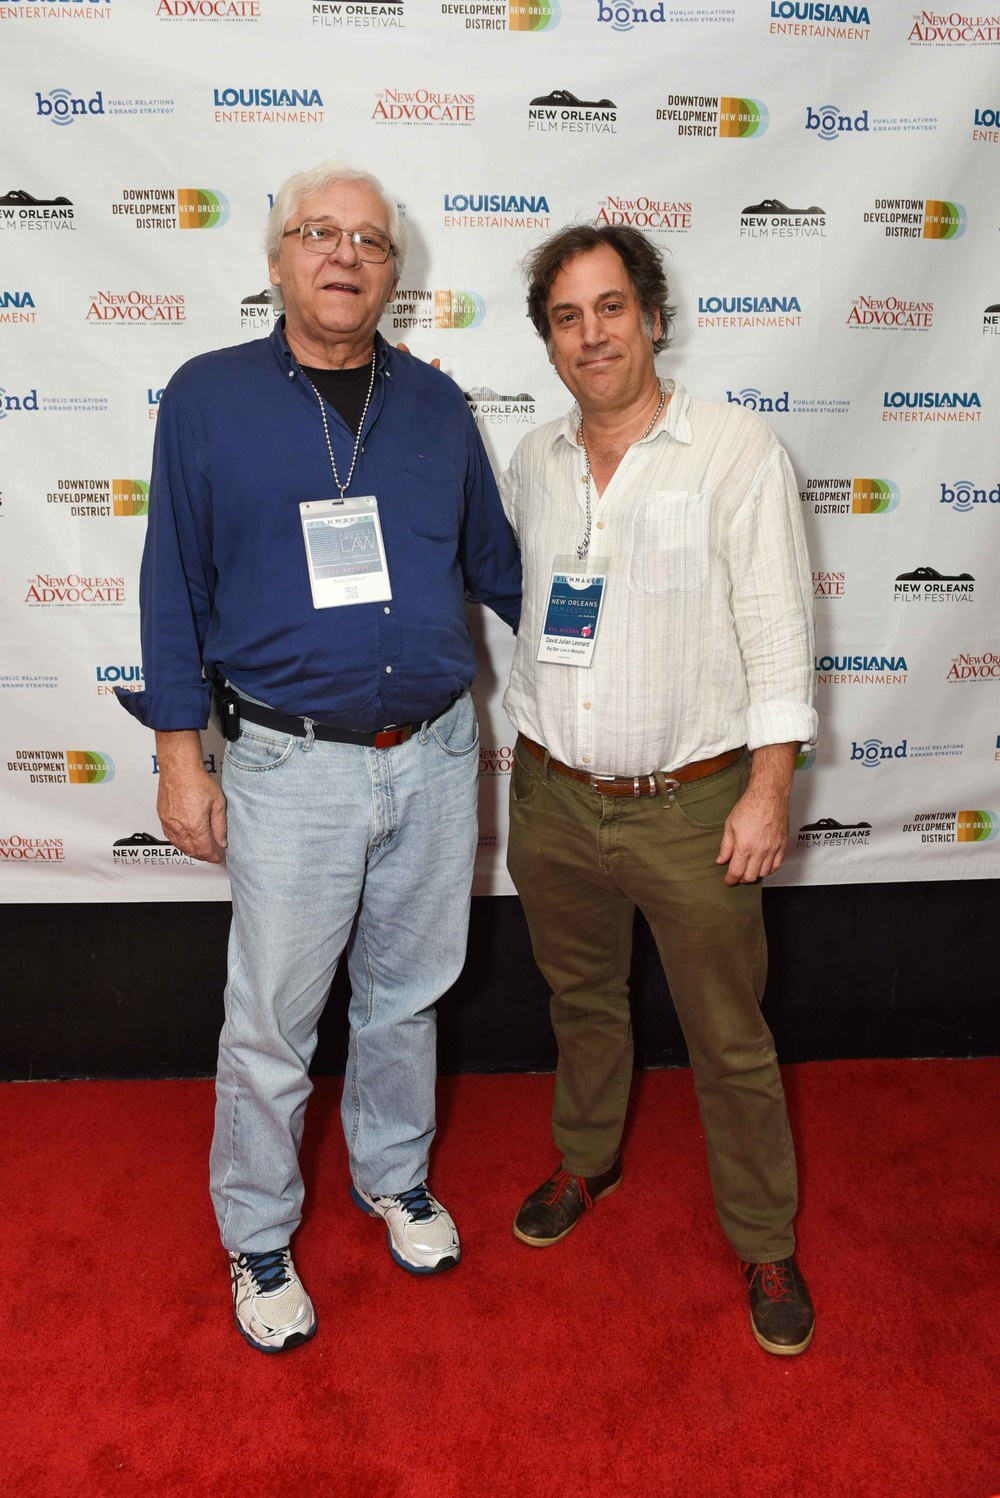 NEW ORLEANS, LA - October 20, 2014:  New Orleans Film Fest at the Joy Theater in New Orleans, Louisiana (photo by Adrienne Battistella, 2014)